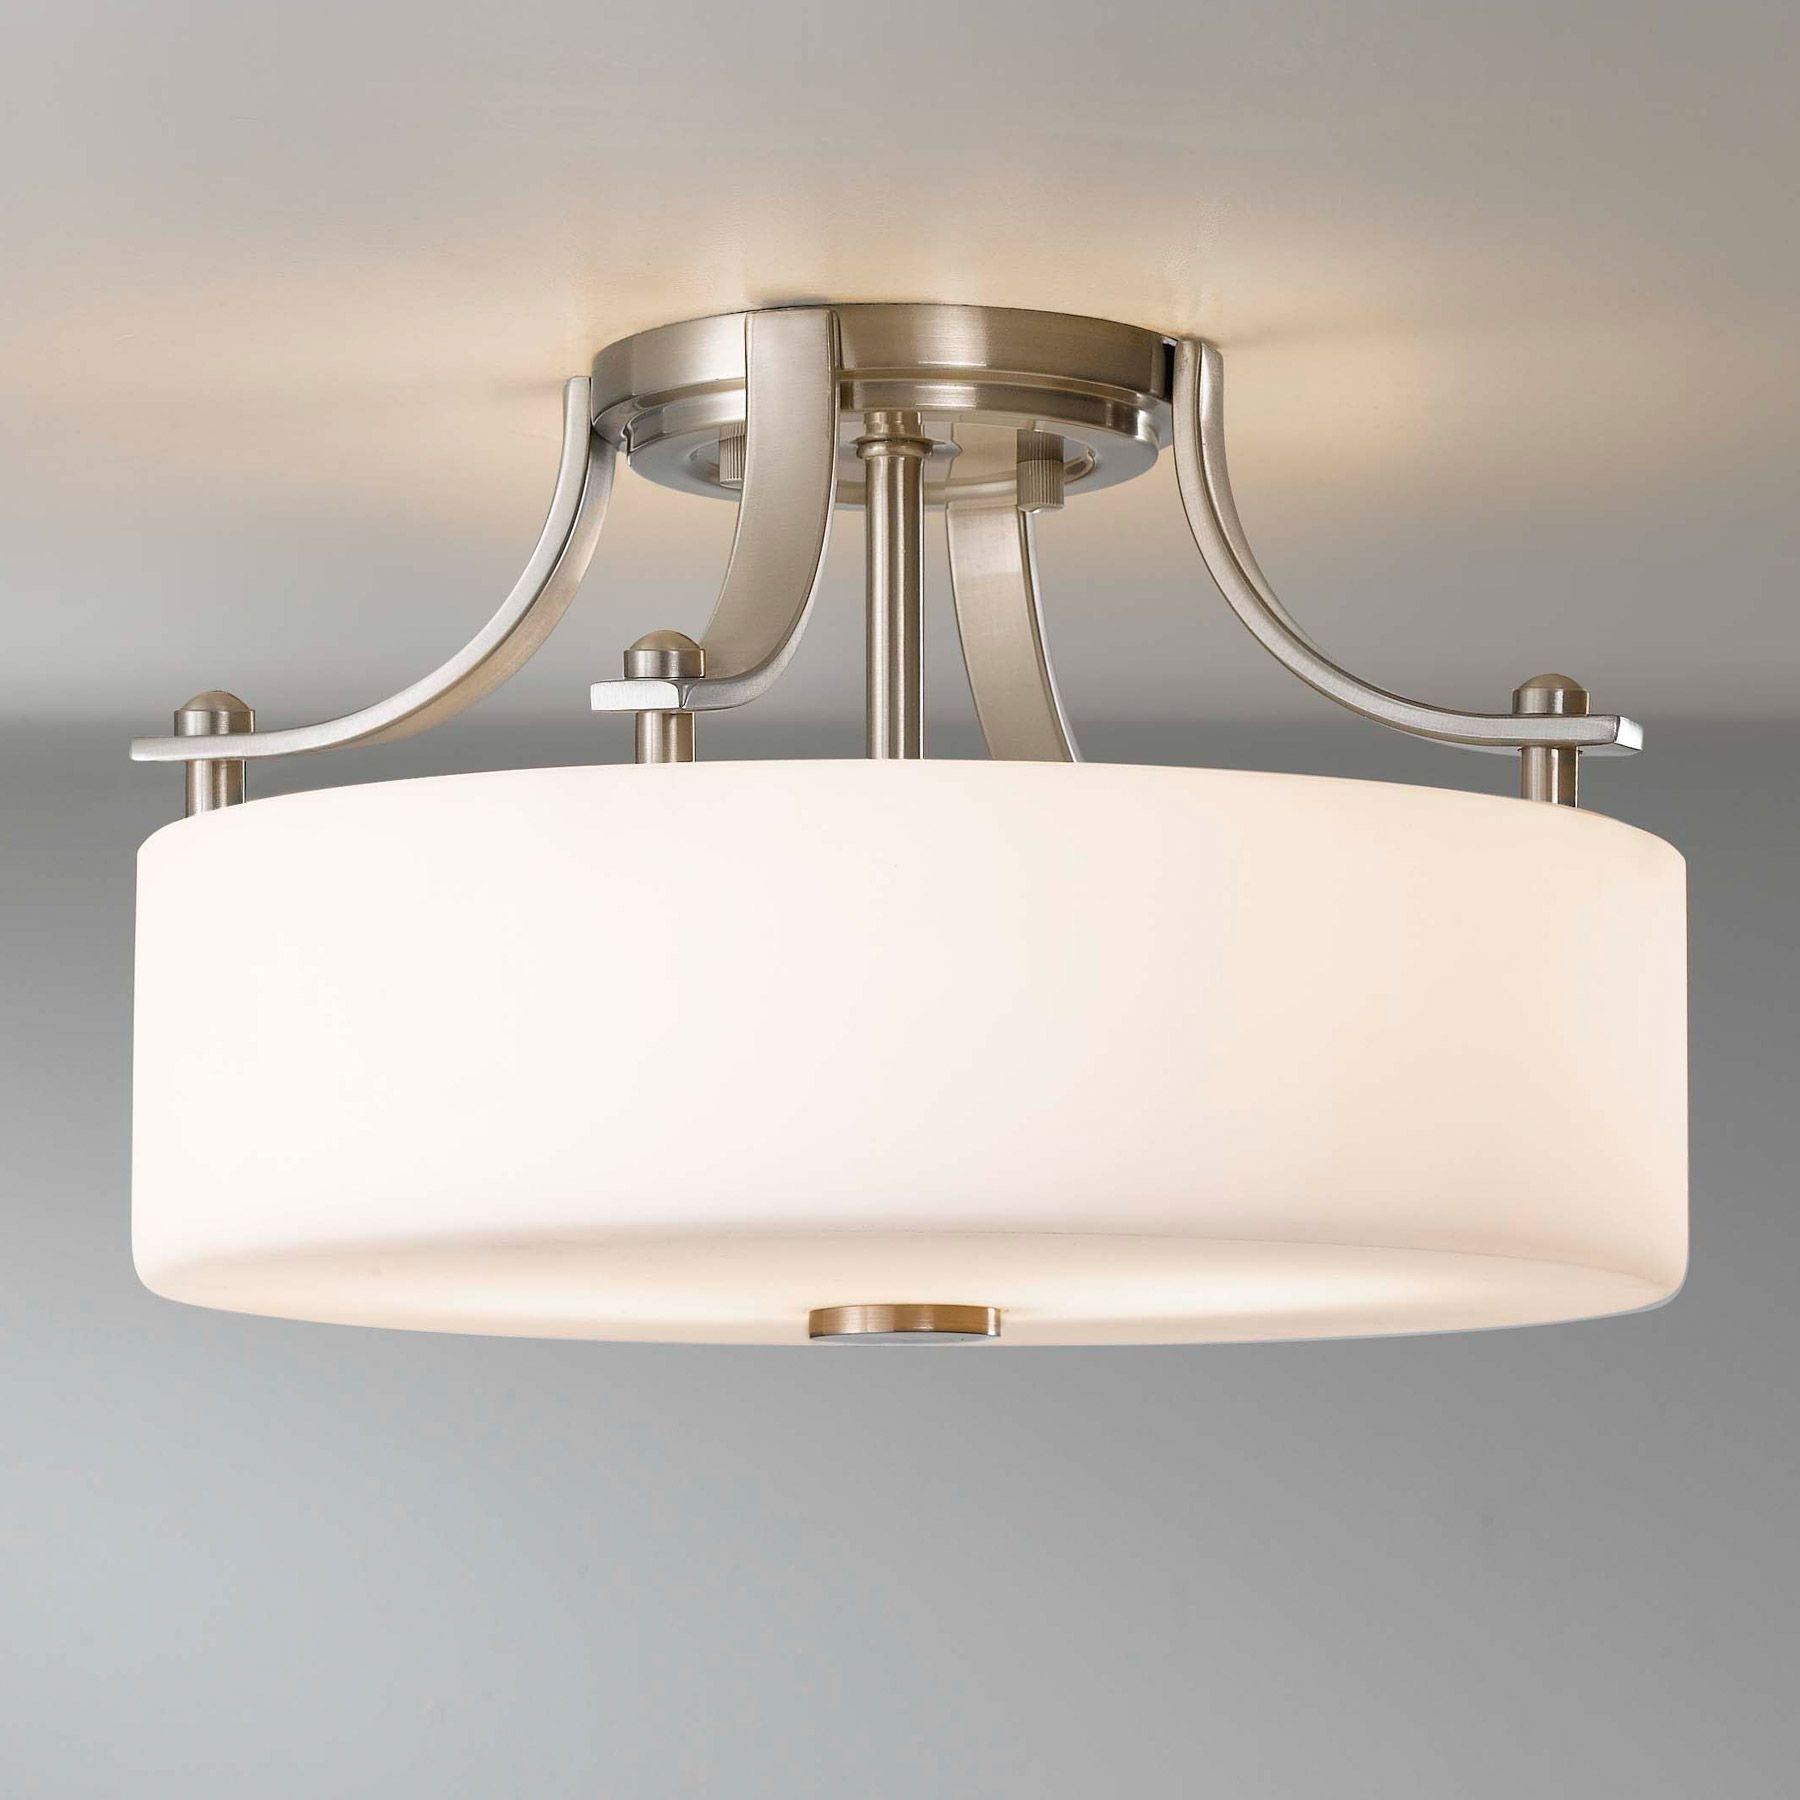 White Flushmount Light Fixture Bathroom Light Fixtures Ceiling Kitchen Lighting Fixtures Ceiling Bathroom Ceiling Light